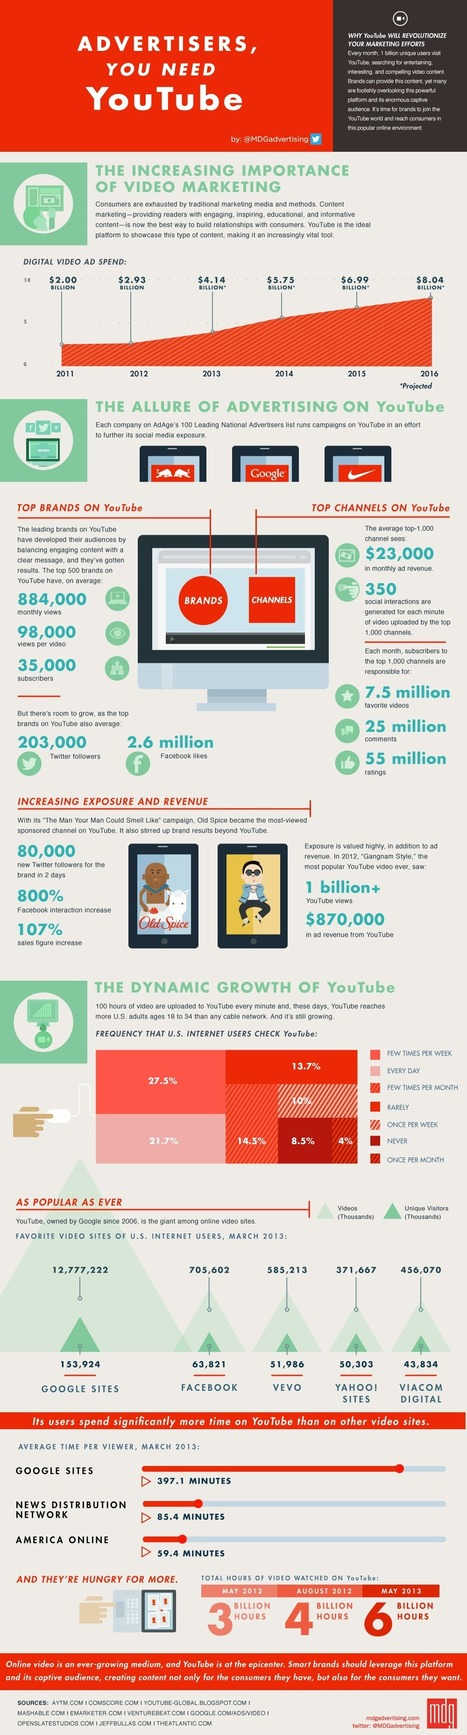 Why Advertisers Need YouTube [INFORGRAPHIC] | Réseaux Sociaux - Social Media | Scoop.it